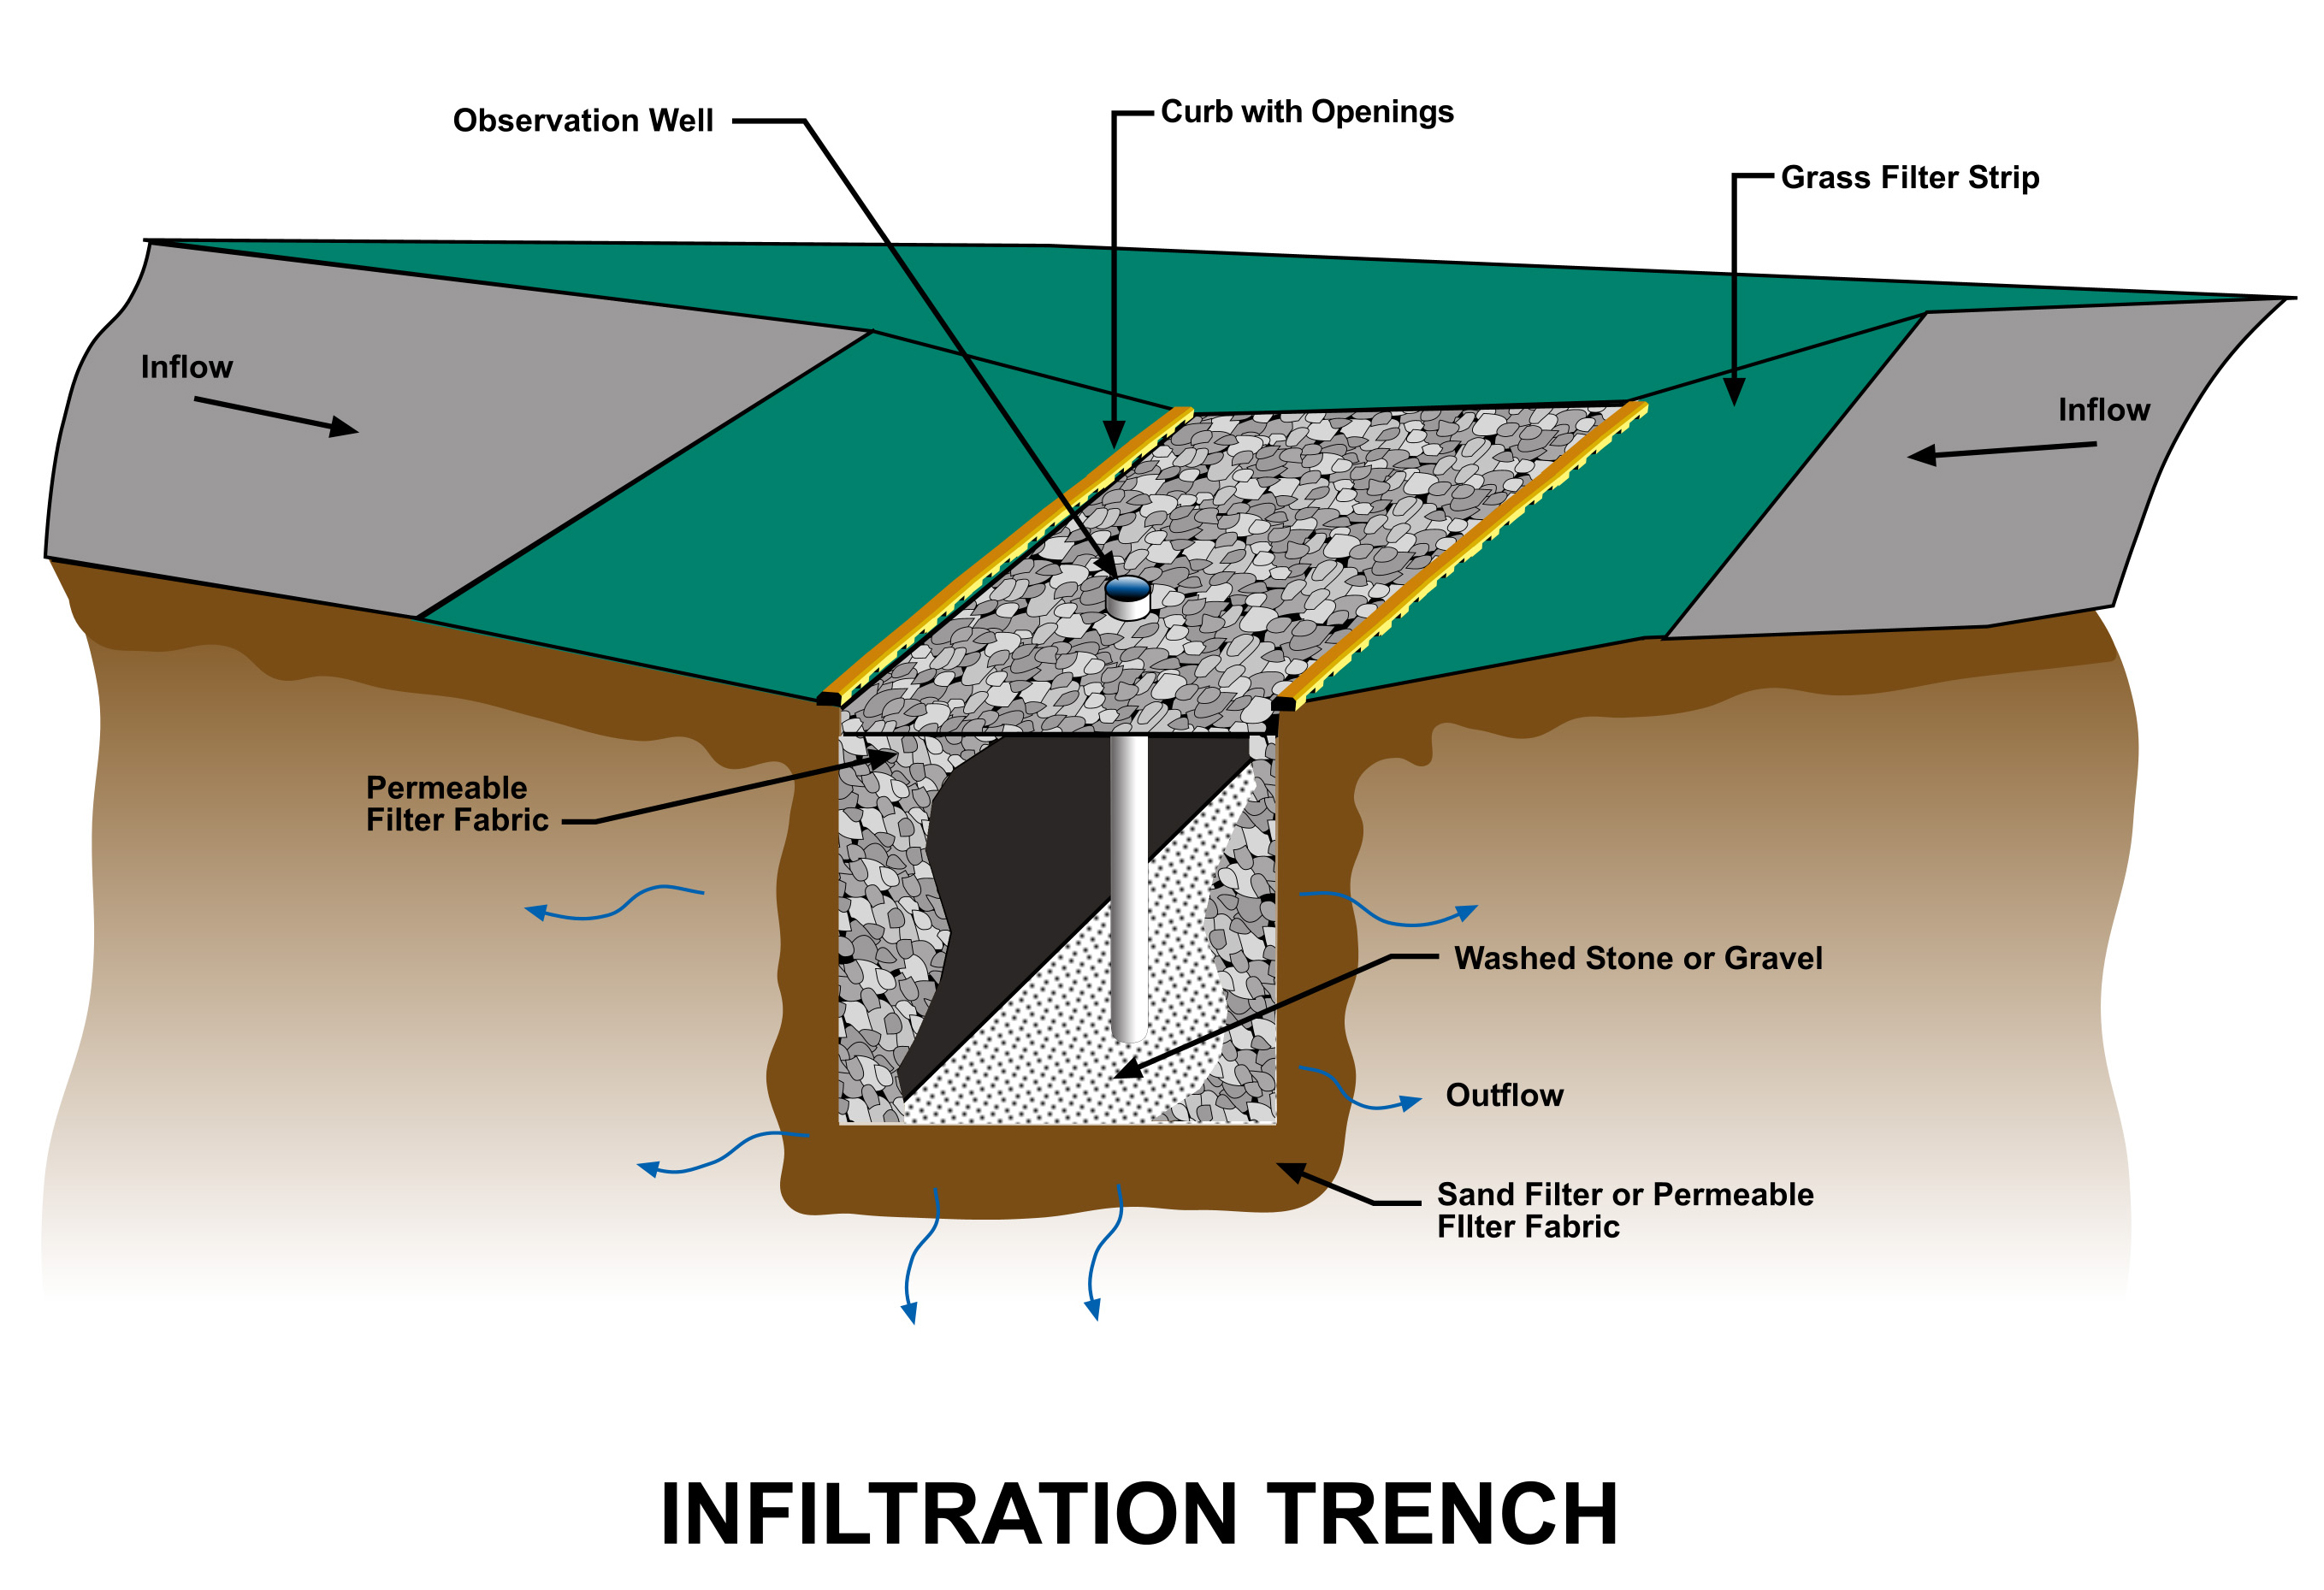 french drain design diagram volvo s40 v50 2004 wiring en infiltration trench keneuliegraphics